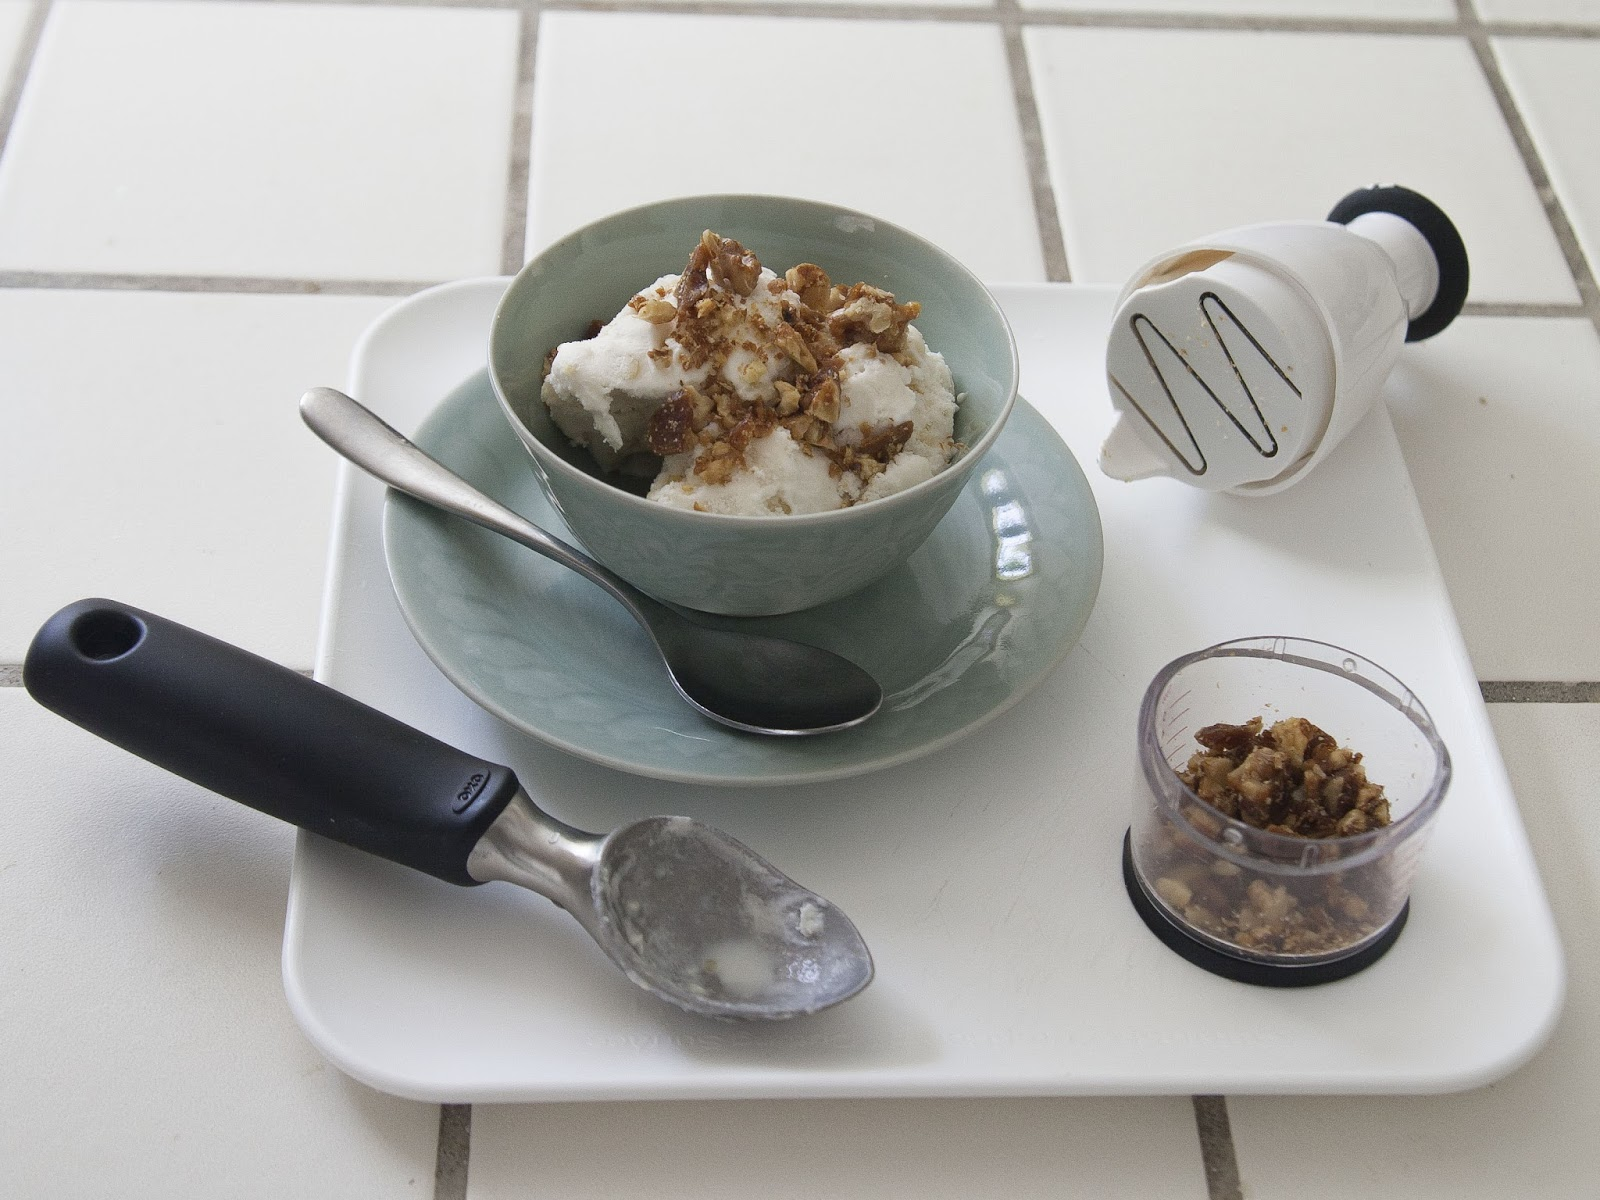 the best of summer. sweet corn and chipotle chili ice cream with walnut chili brittle. thanks oxo!